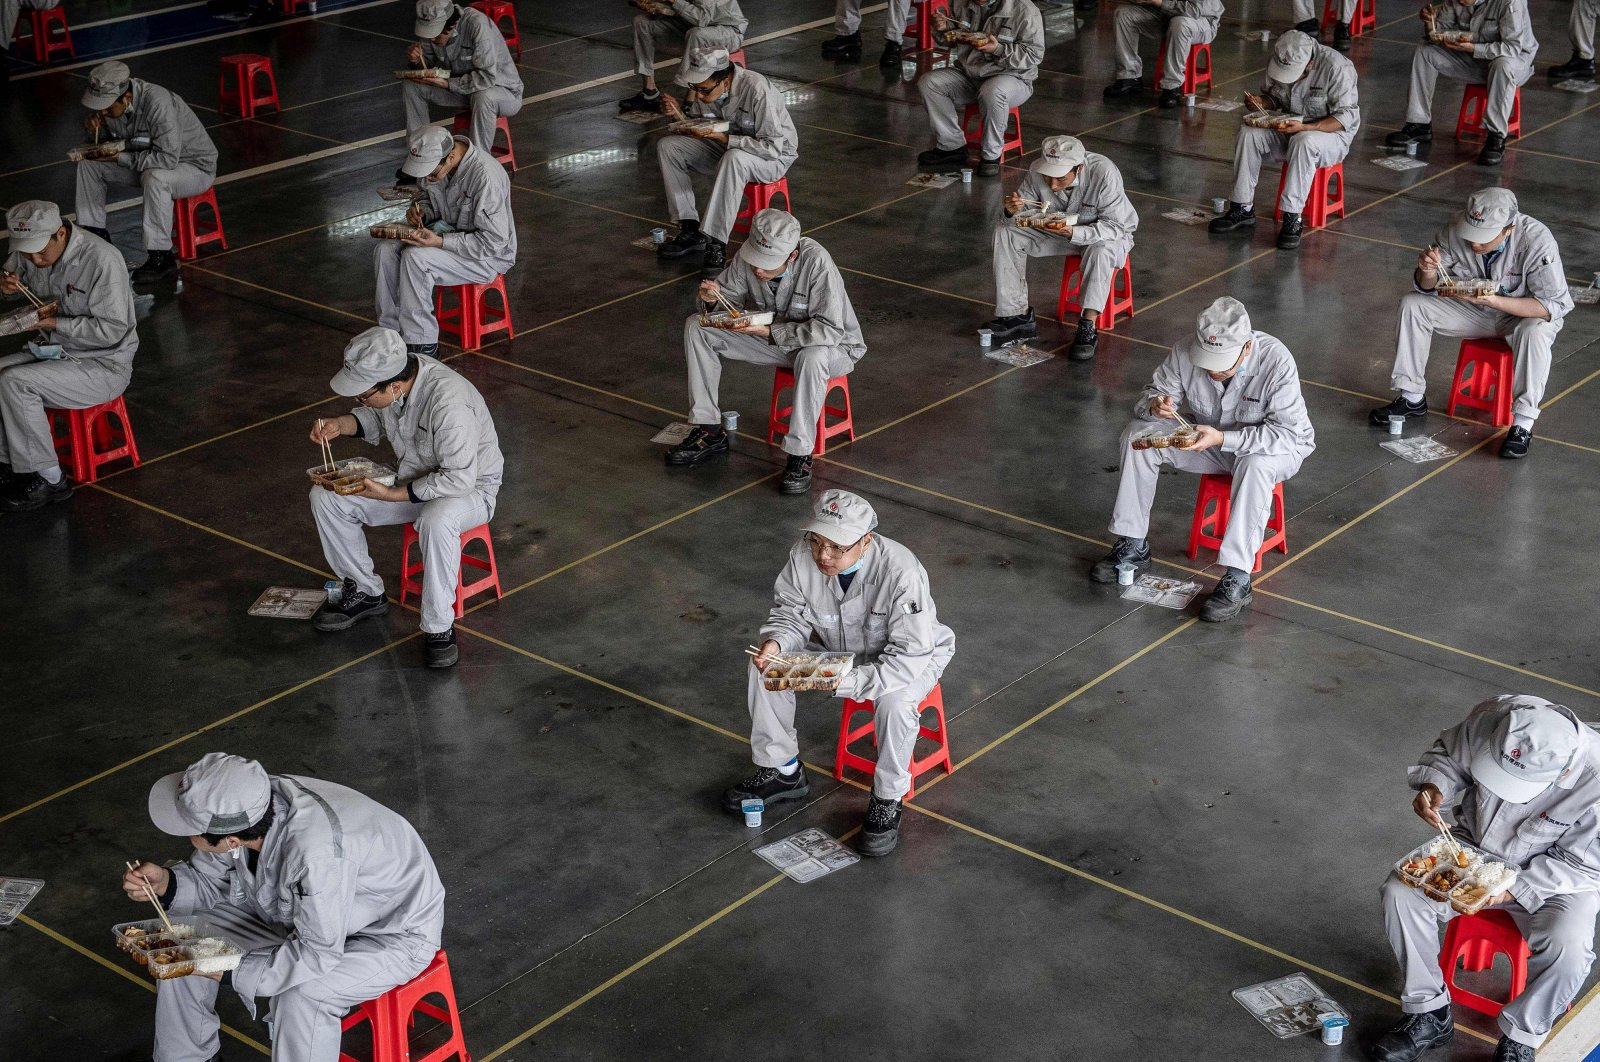 Employees eating during lunch break at an auto plant of Dongfeng Honda in Wuhan in China's central Hubei province, April 17, 2020. (AFP Photo)